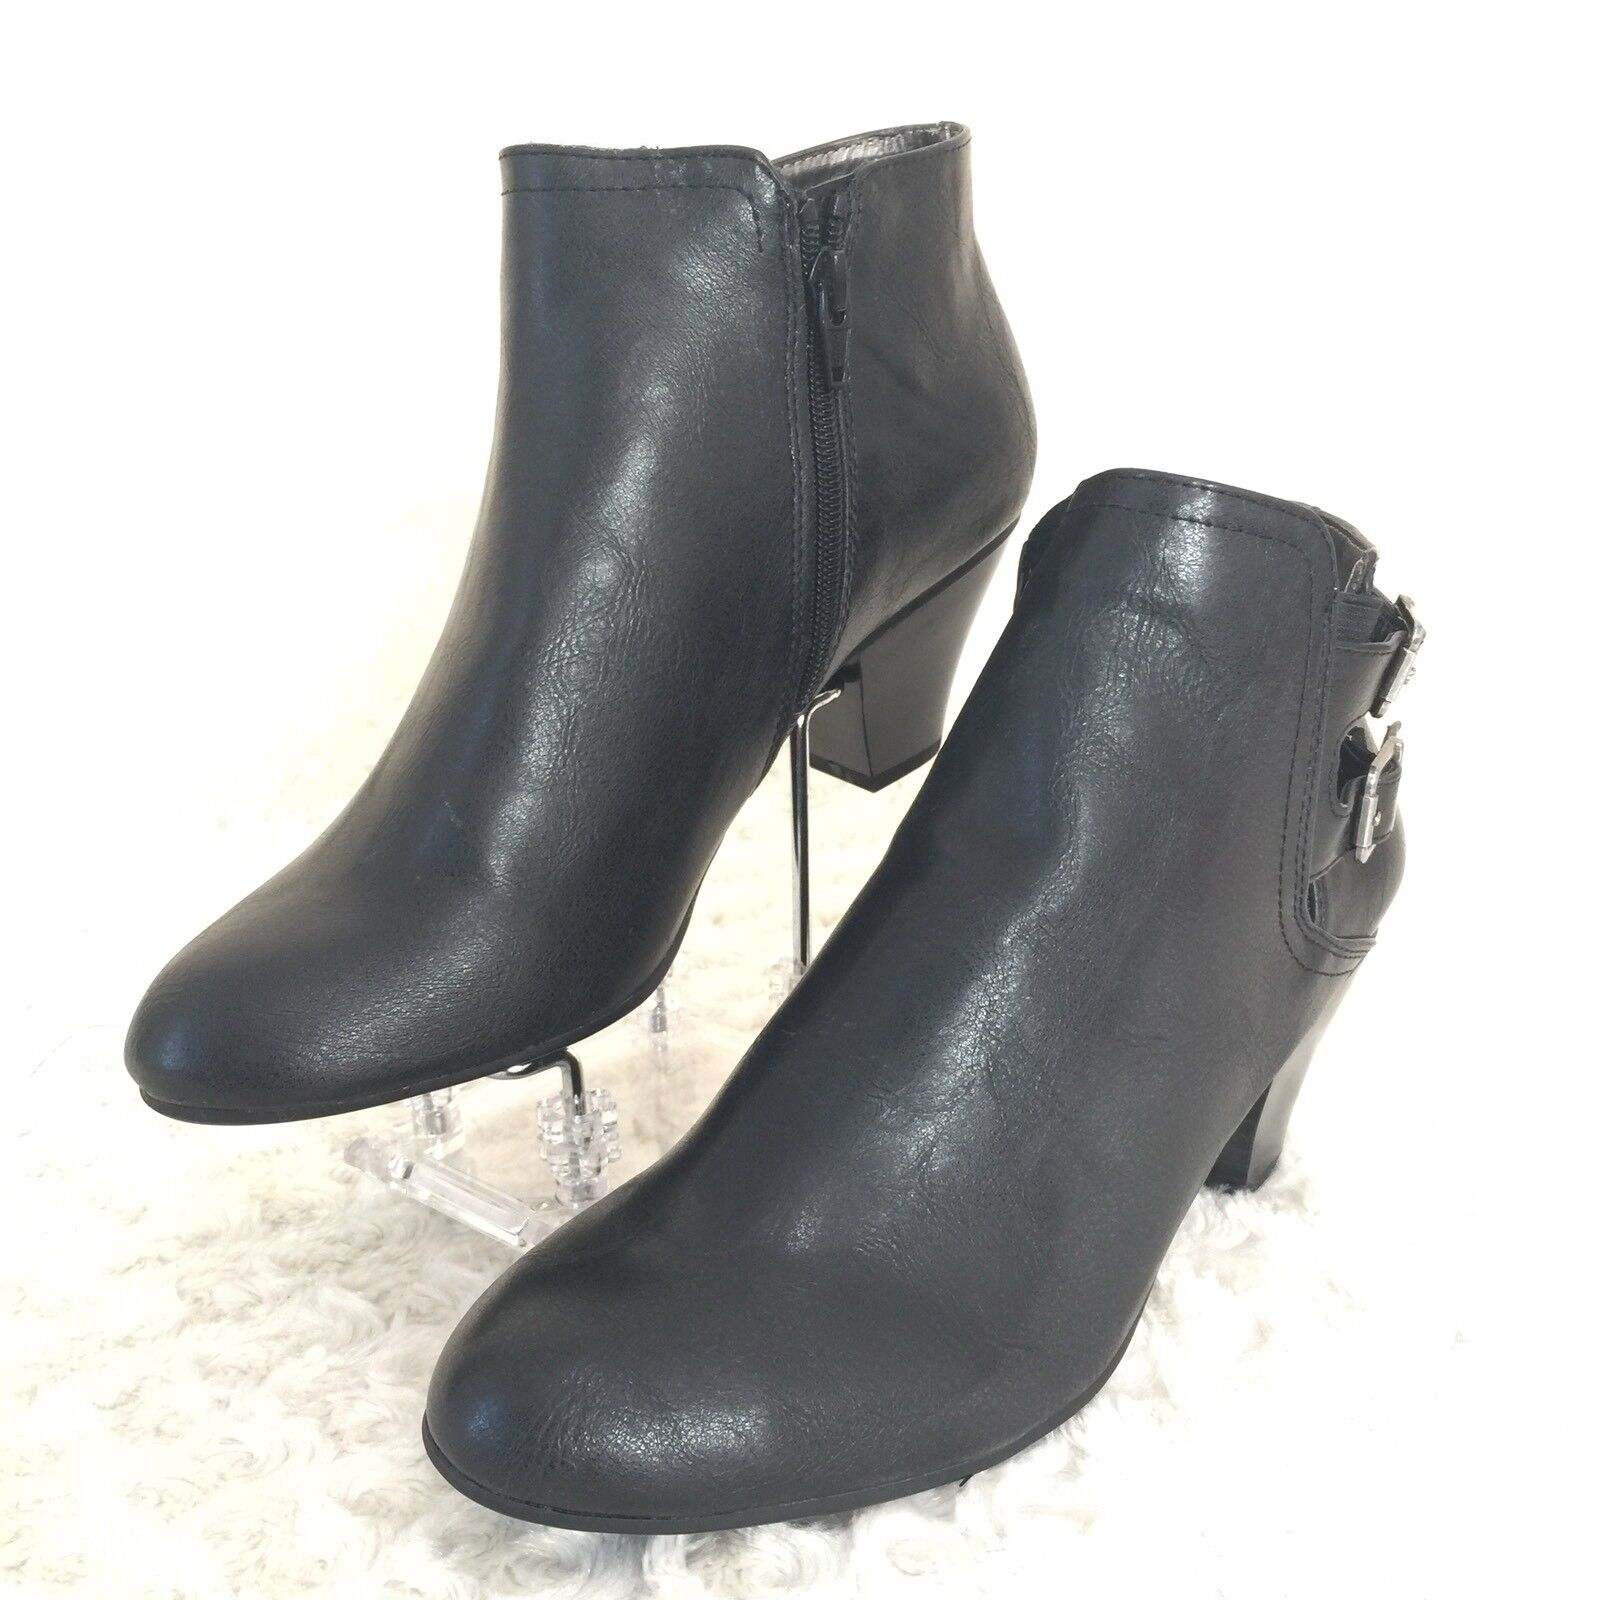 LifeStride Gabe Size 9.5 M Ankle Boots Black Shoes Cushioned Round Toe Side Zip